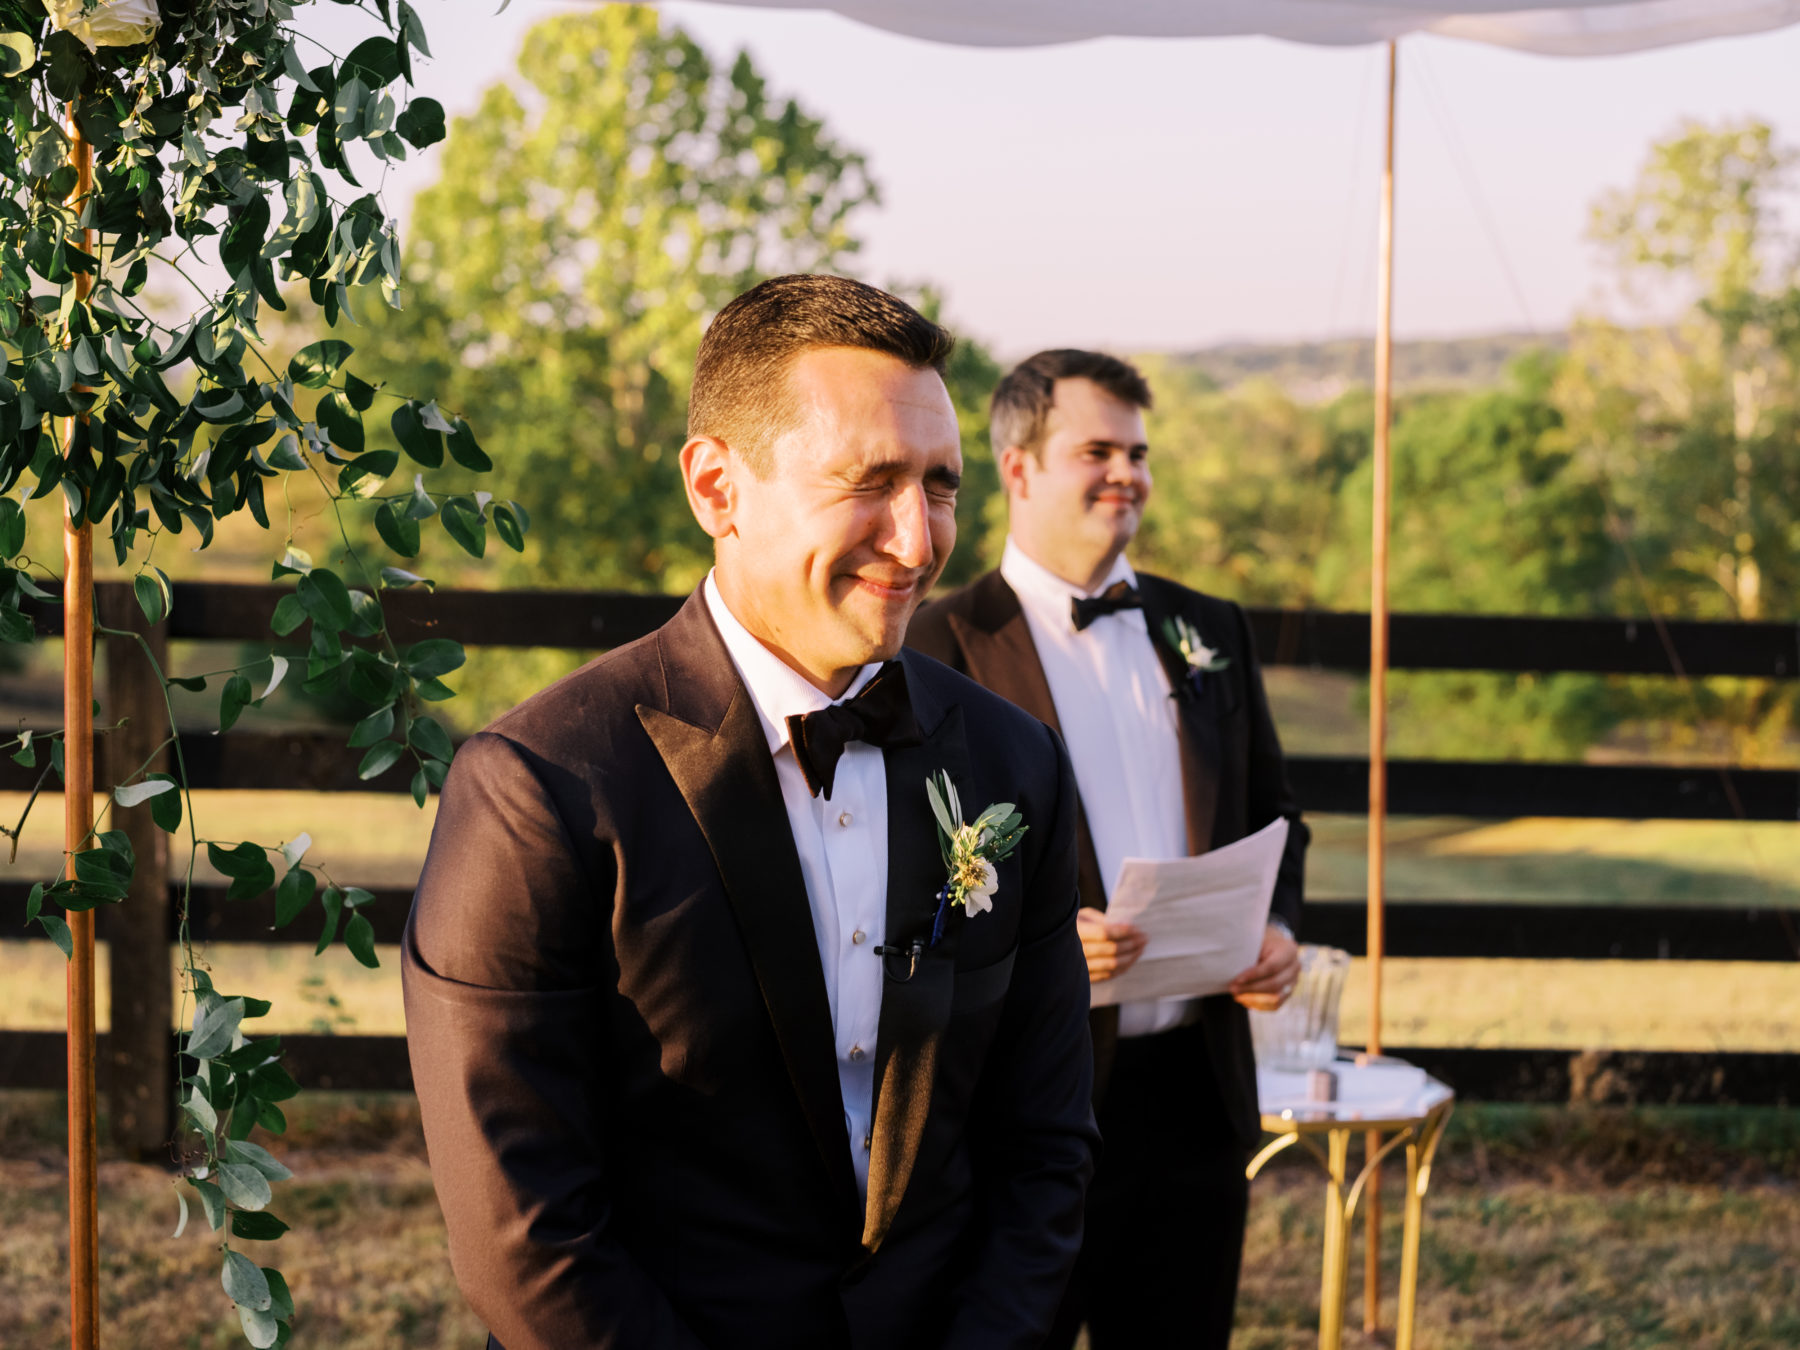 Grooms reaction during wedding ceremony at Autumn Crest Farm